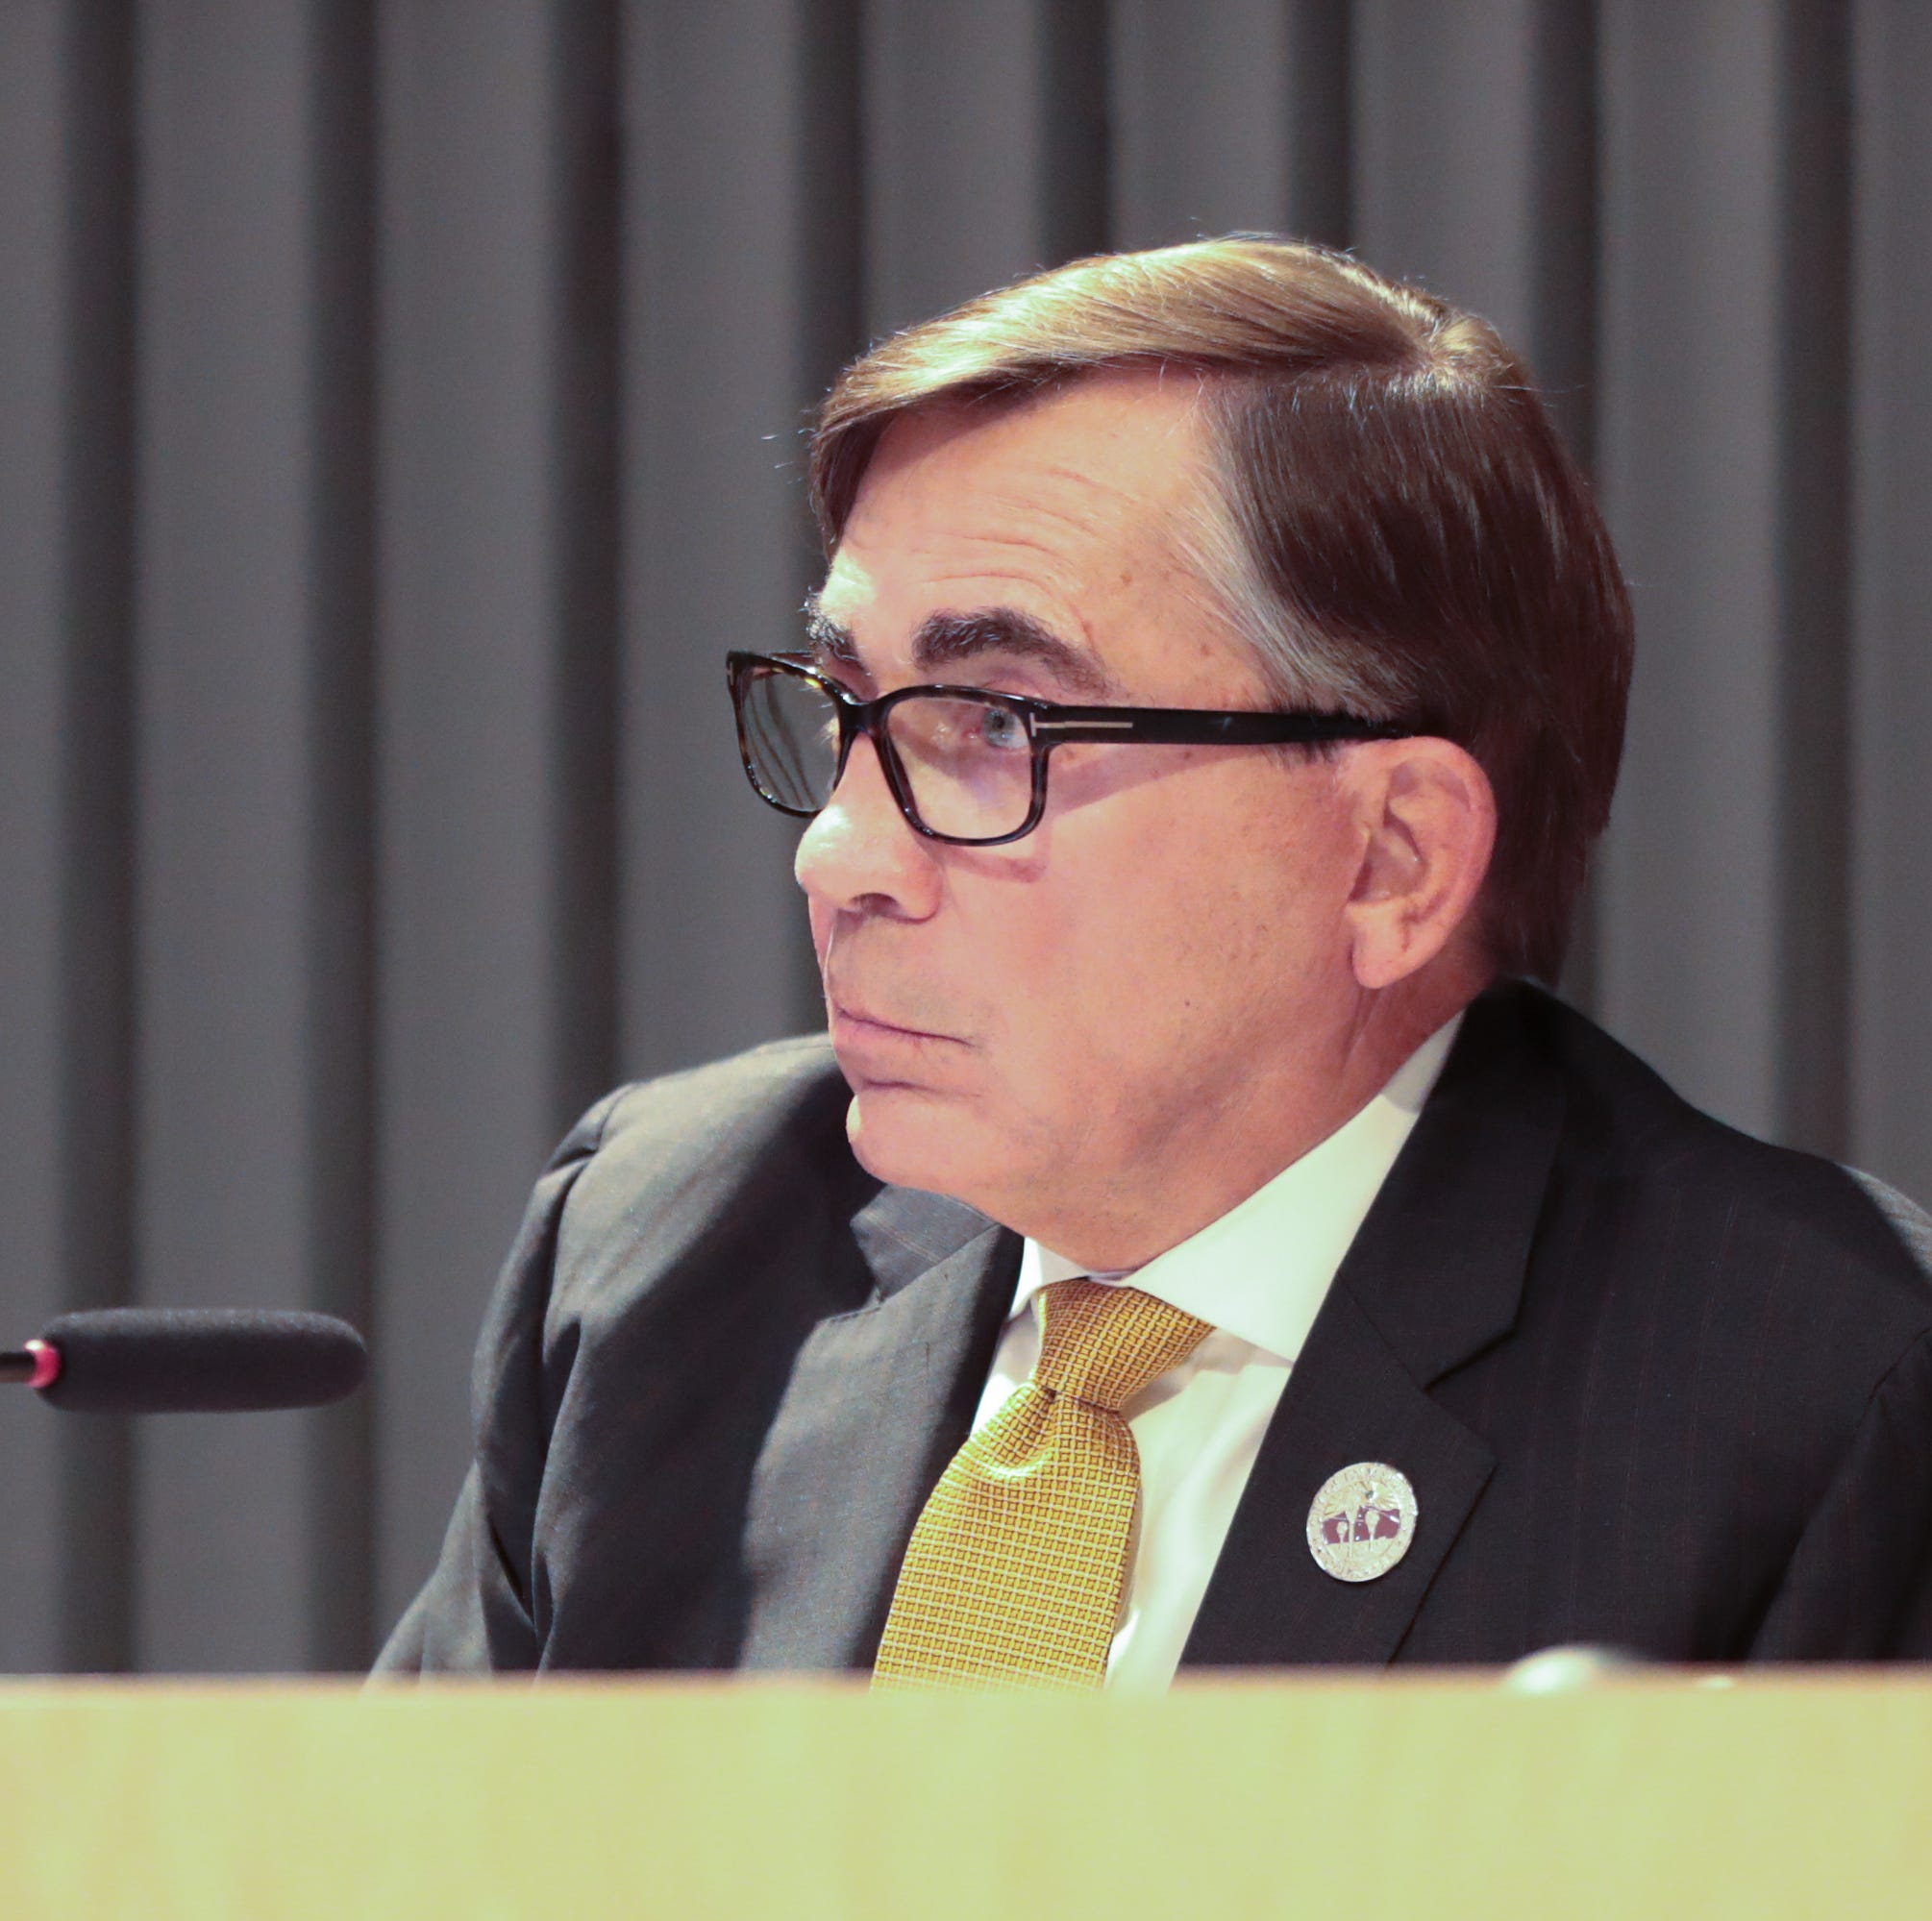 Report: No proof Palm Springs mayor recorded confidential City Hall conversations